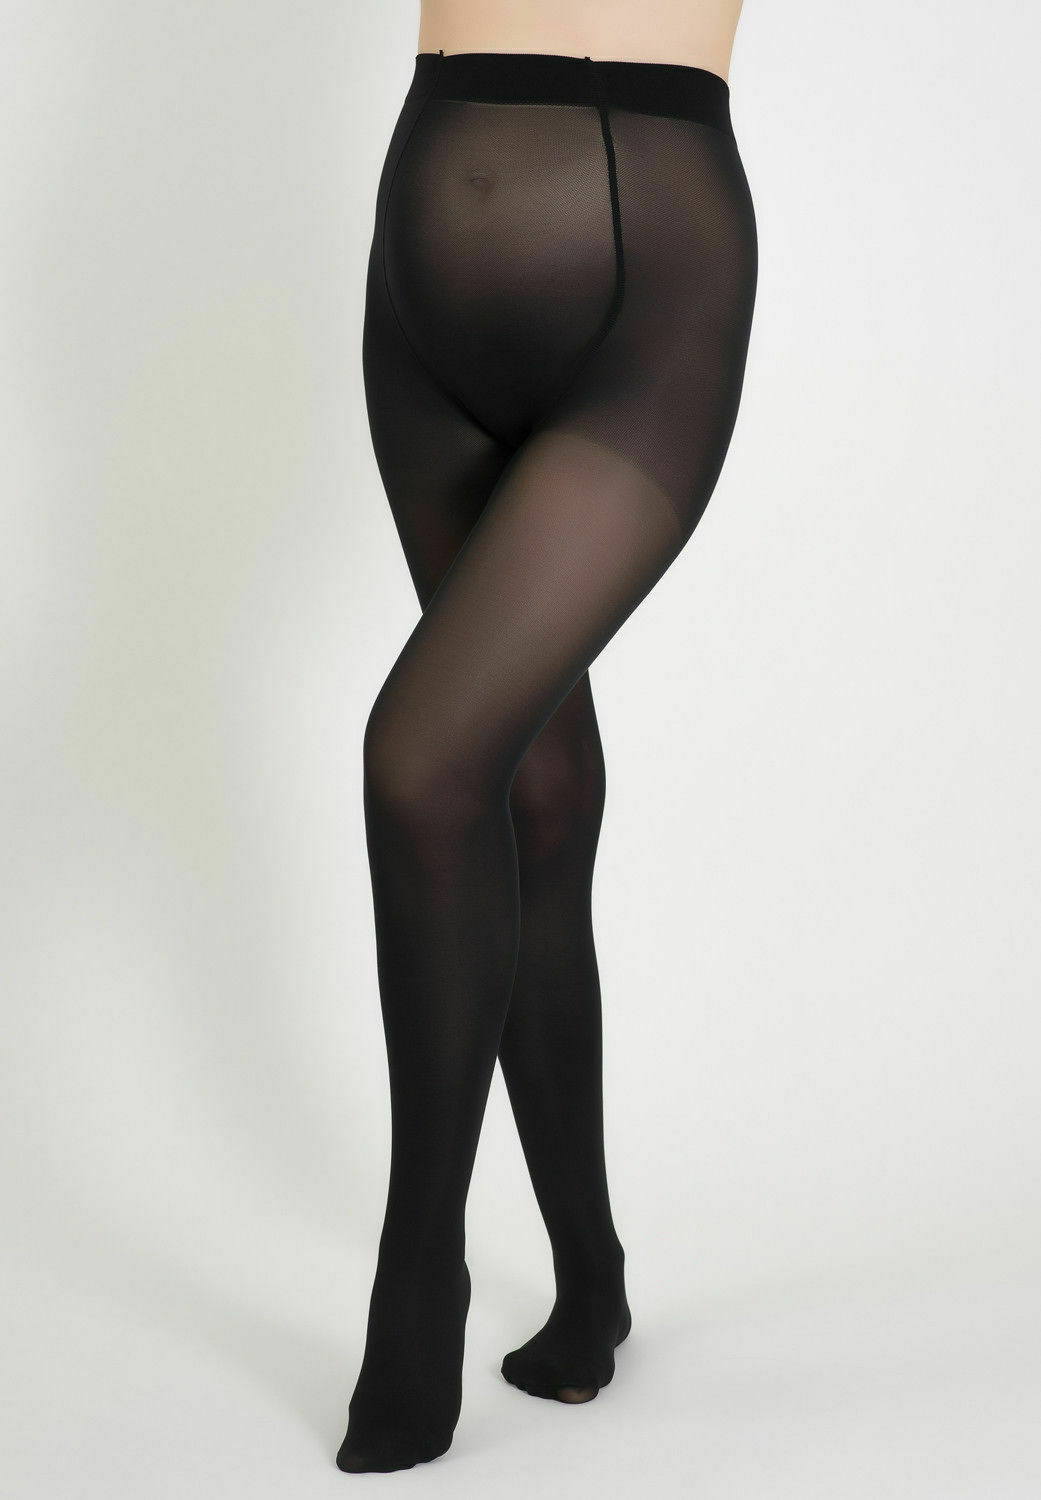 Bellissima-Women-039-s-Maternity-Tights-Black-50-den-Pregnancy-Hosiery thumbnail 11